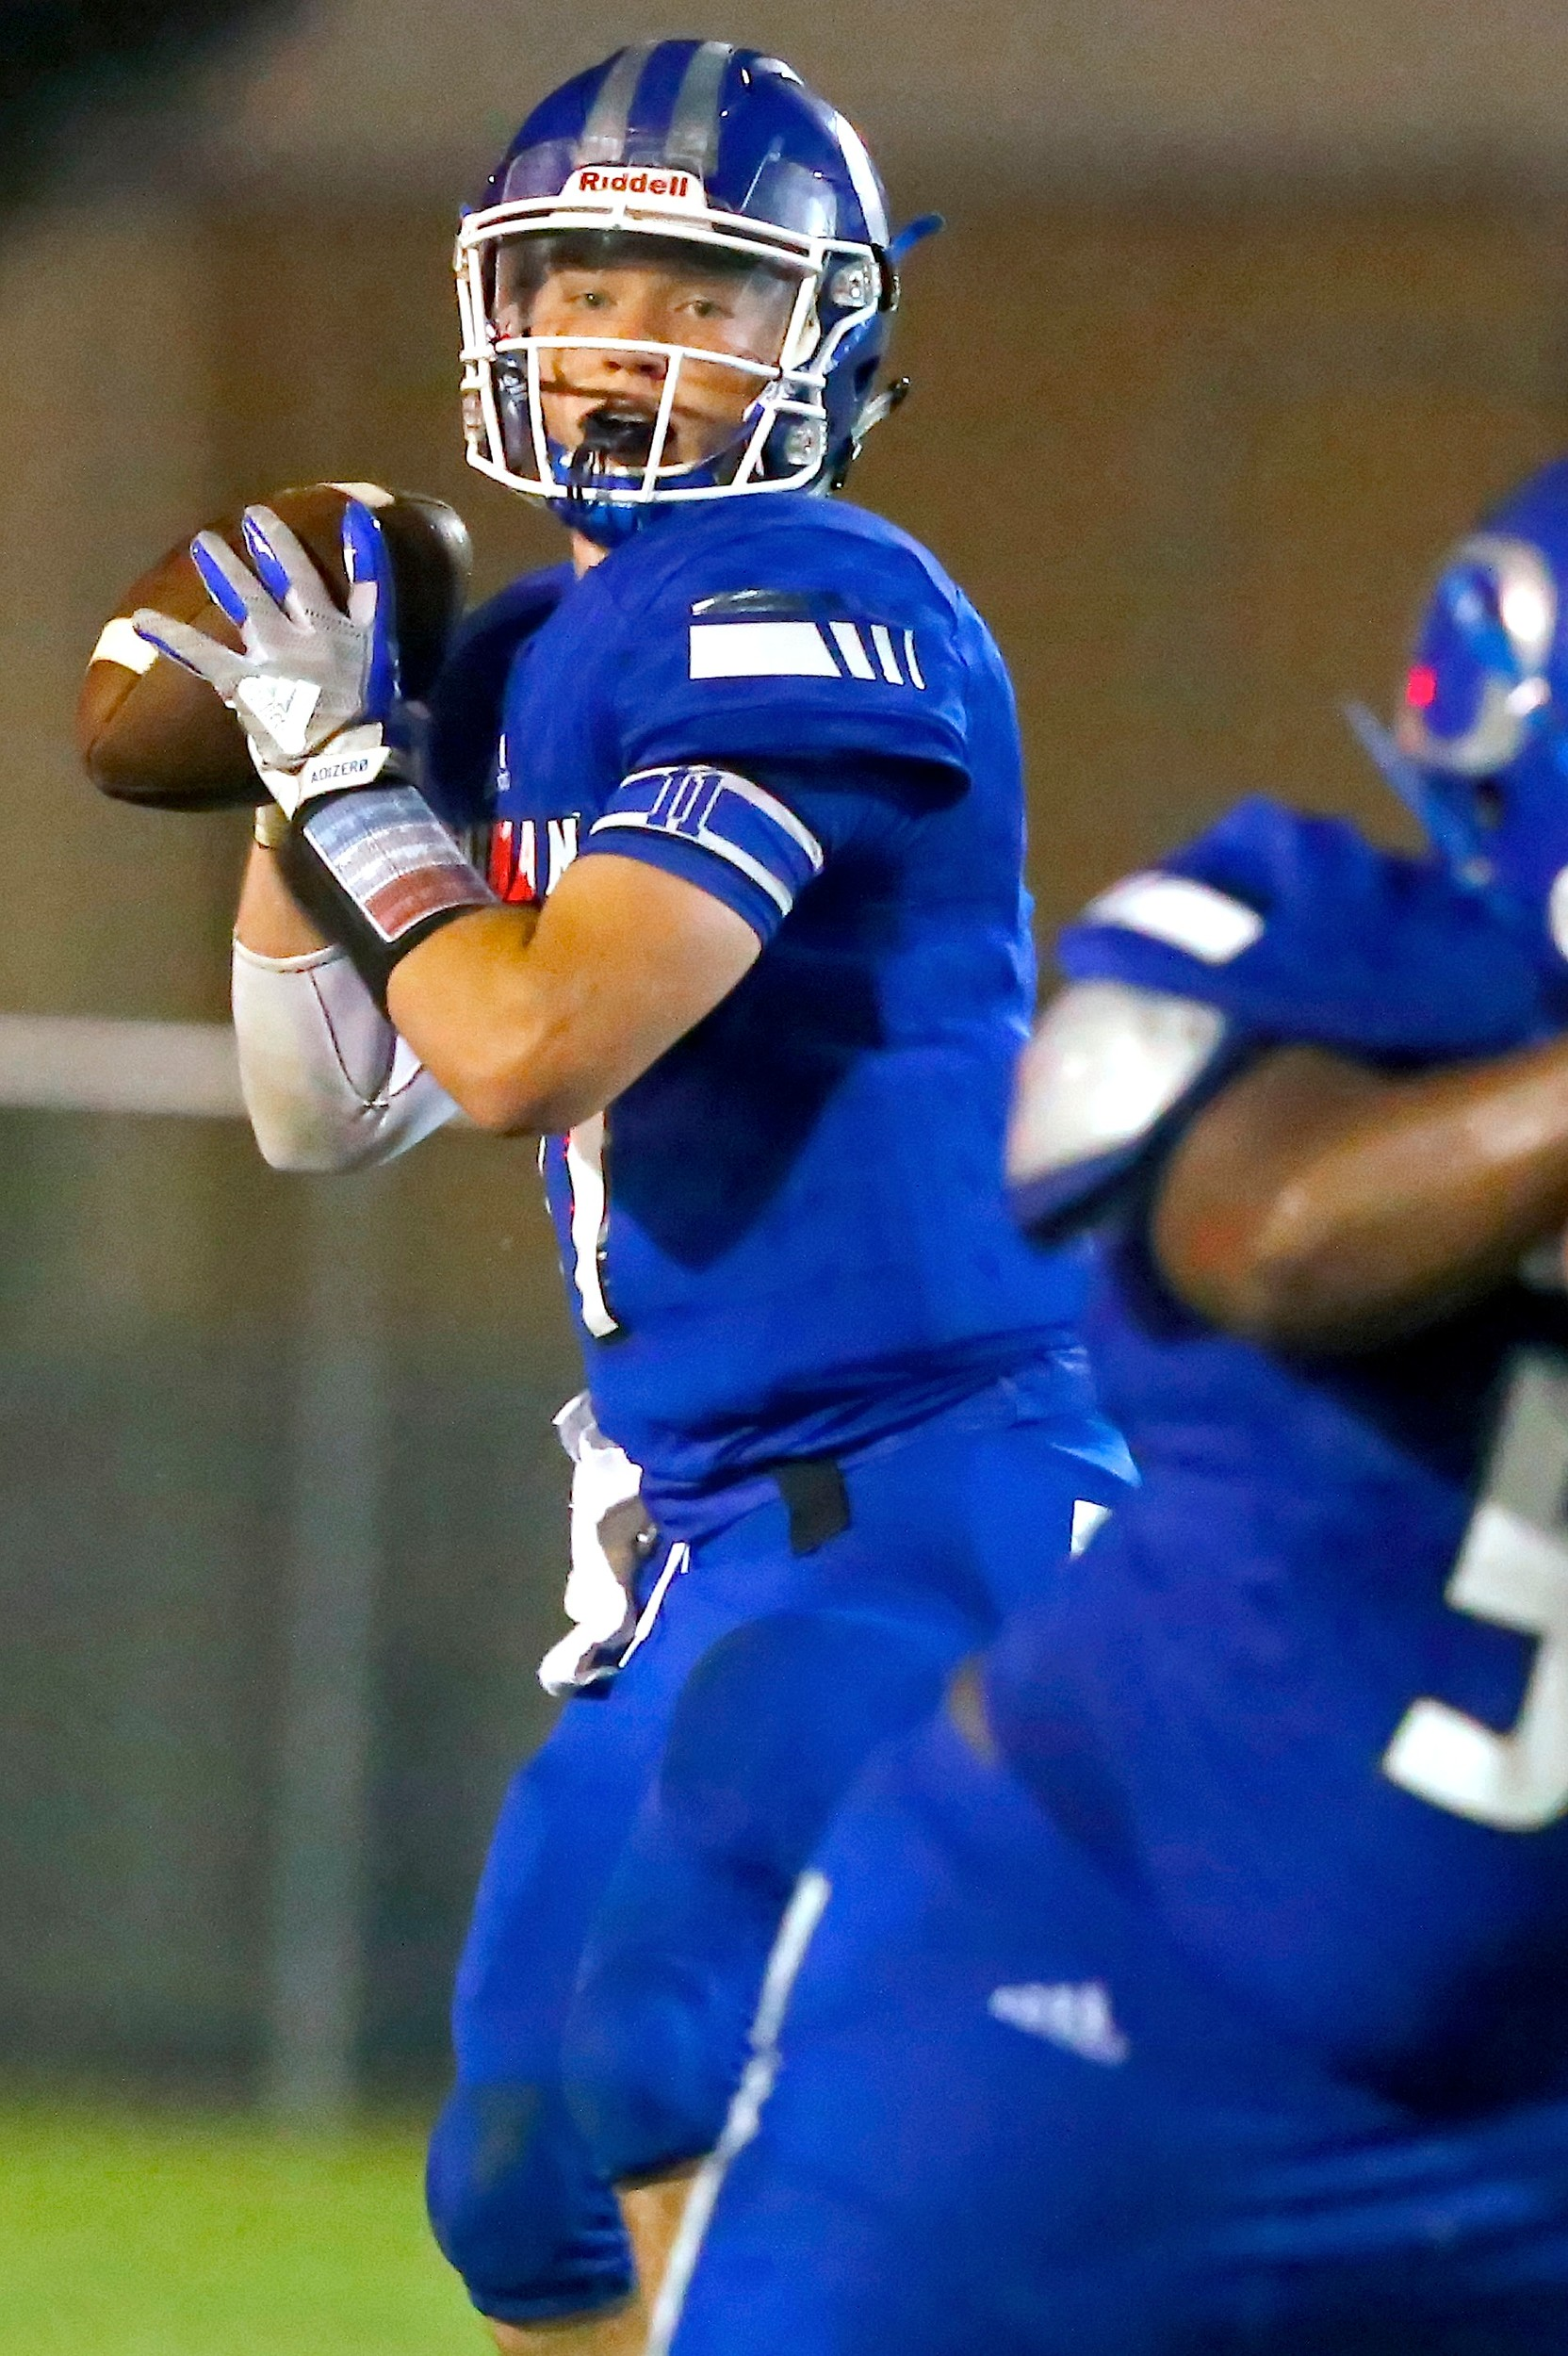 Oakman's Jon Avery throws against Lamar County Friday night. Avery completed 15 of 15 passes on the night for 271 yards and a score. Avery broke the old state record by five passes.